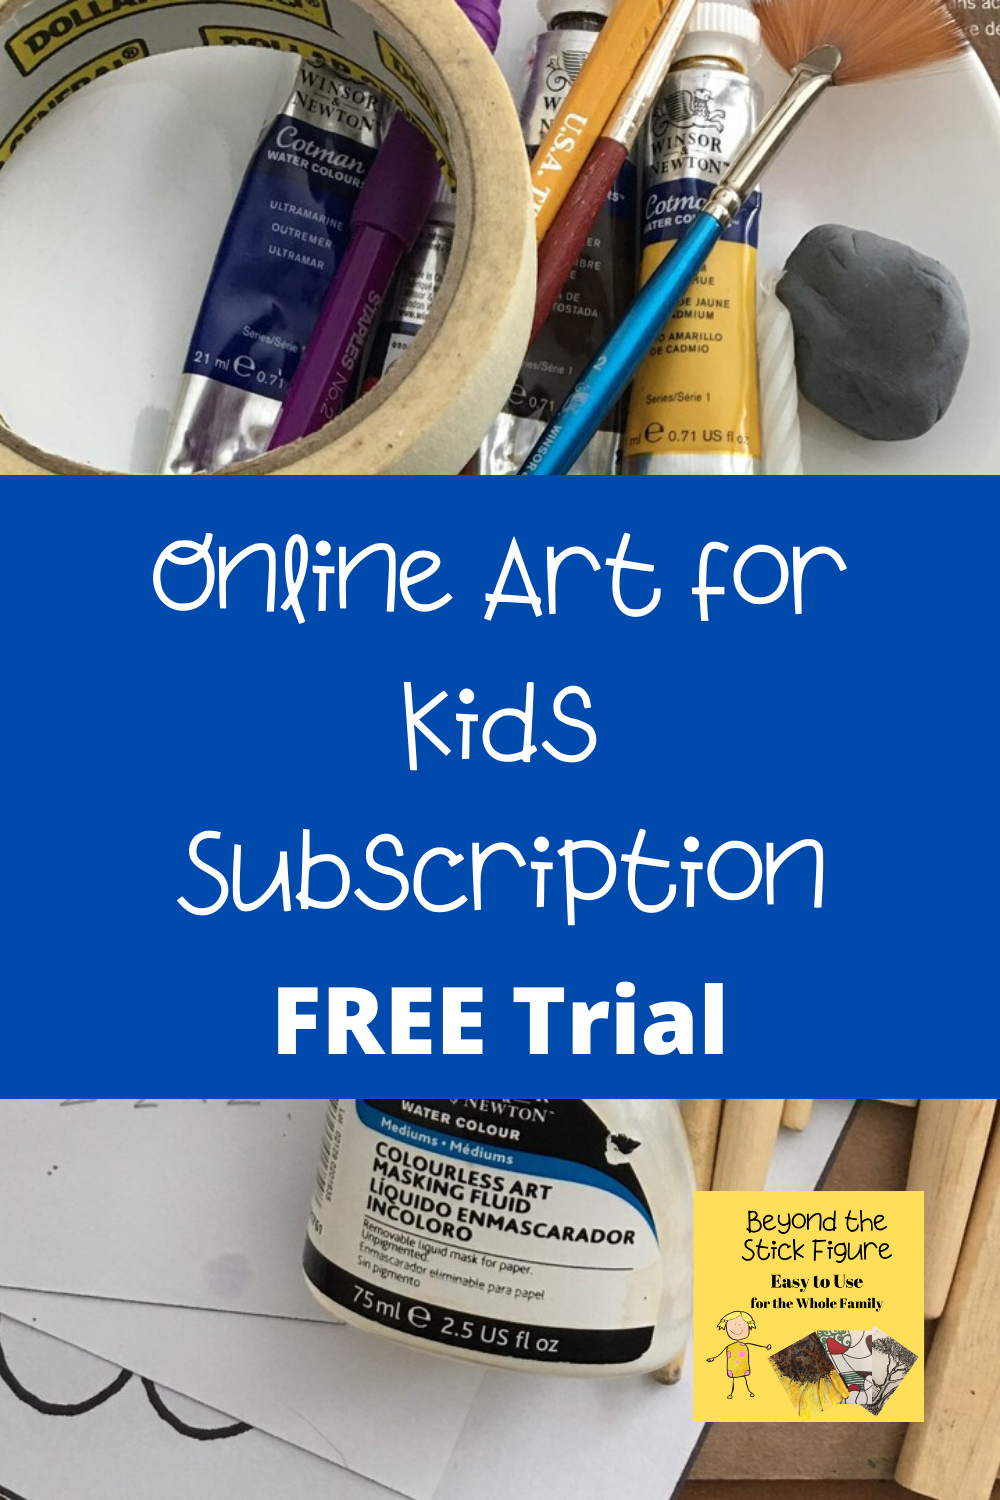 Do your children love art? Do you wish you knew how to paint and draw so you could be creative with them? Introducing the Online Art for Kids Subscription built for the whole family. Spend quality time together, create amazing masterpieces, and build confidence in your creative skills.